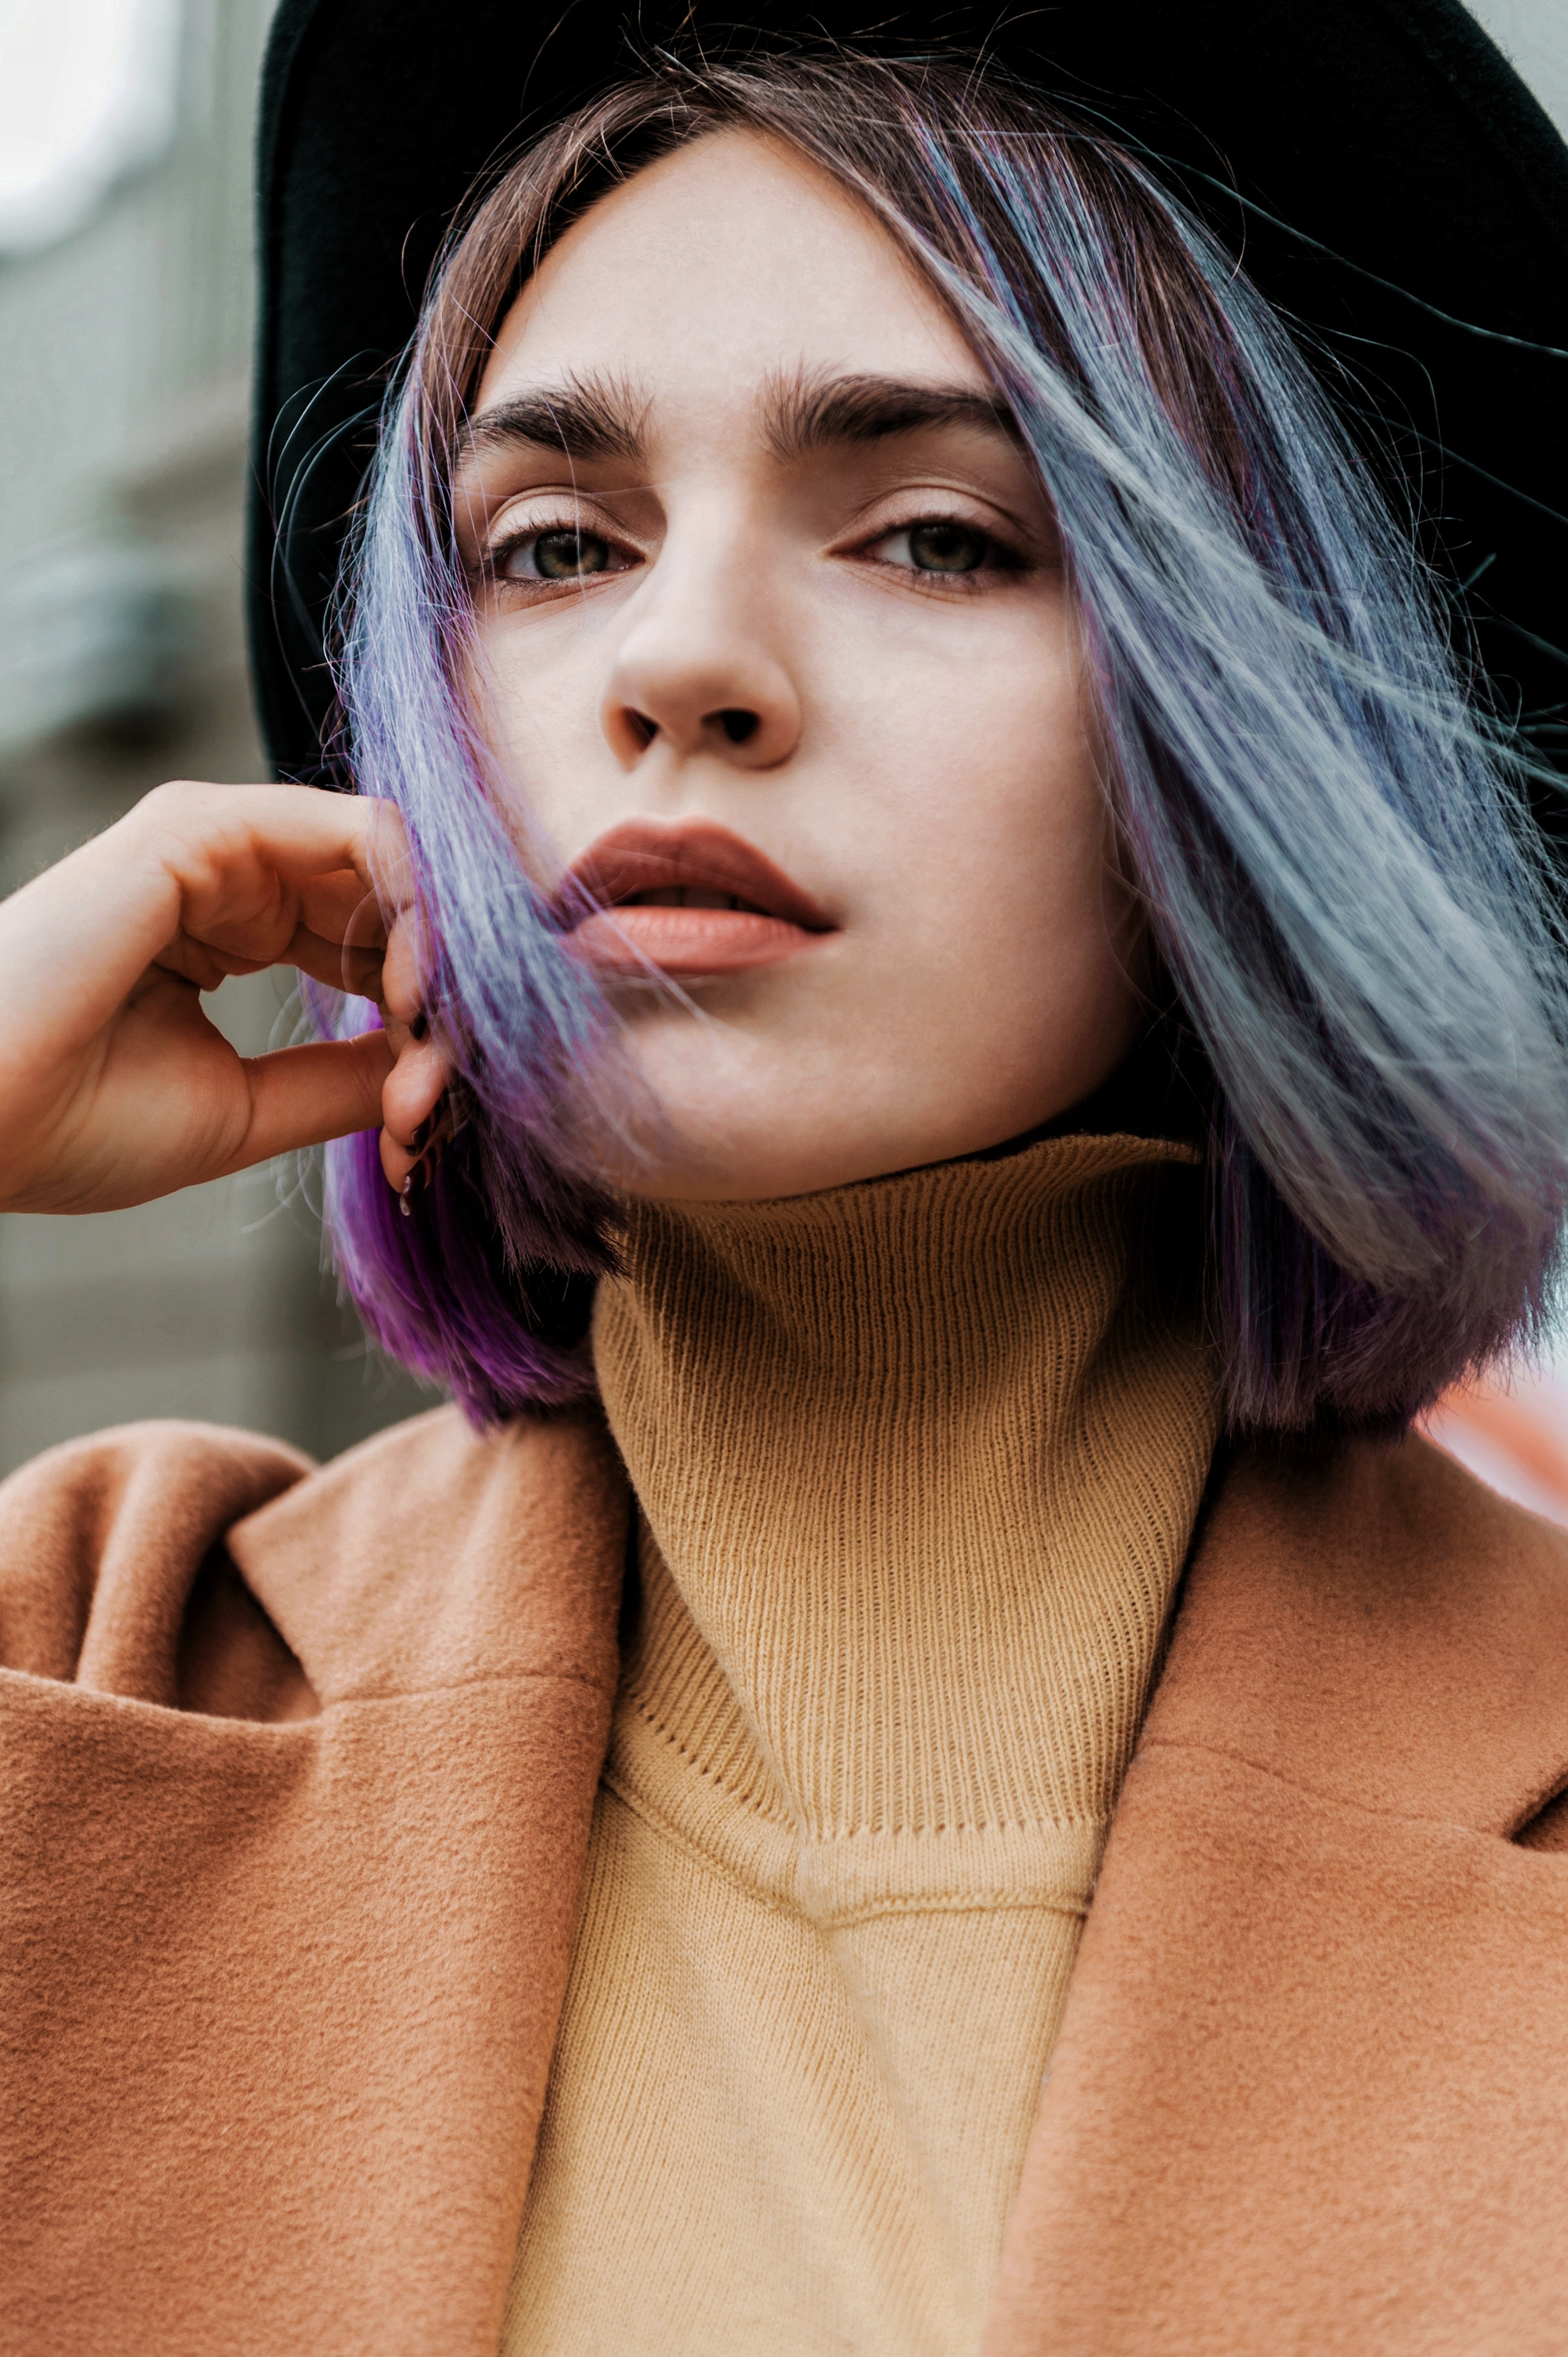 woman with blue and purple ombre hair dye